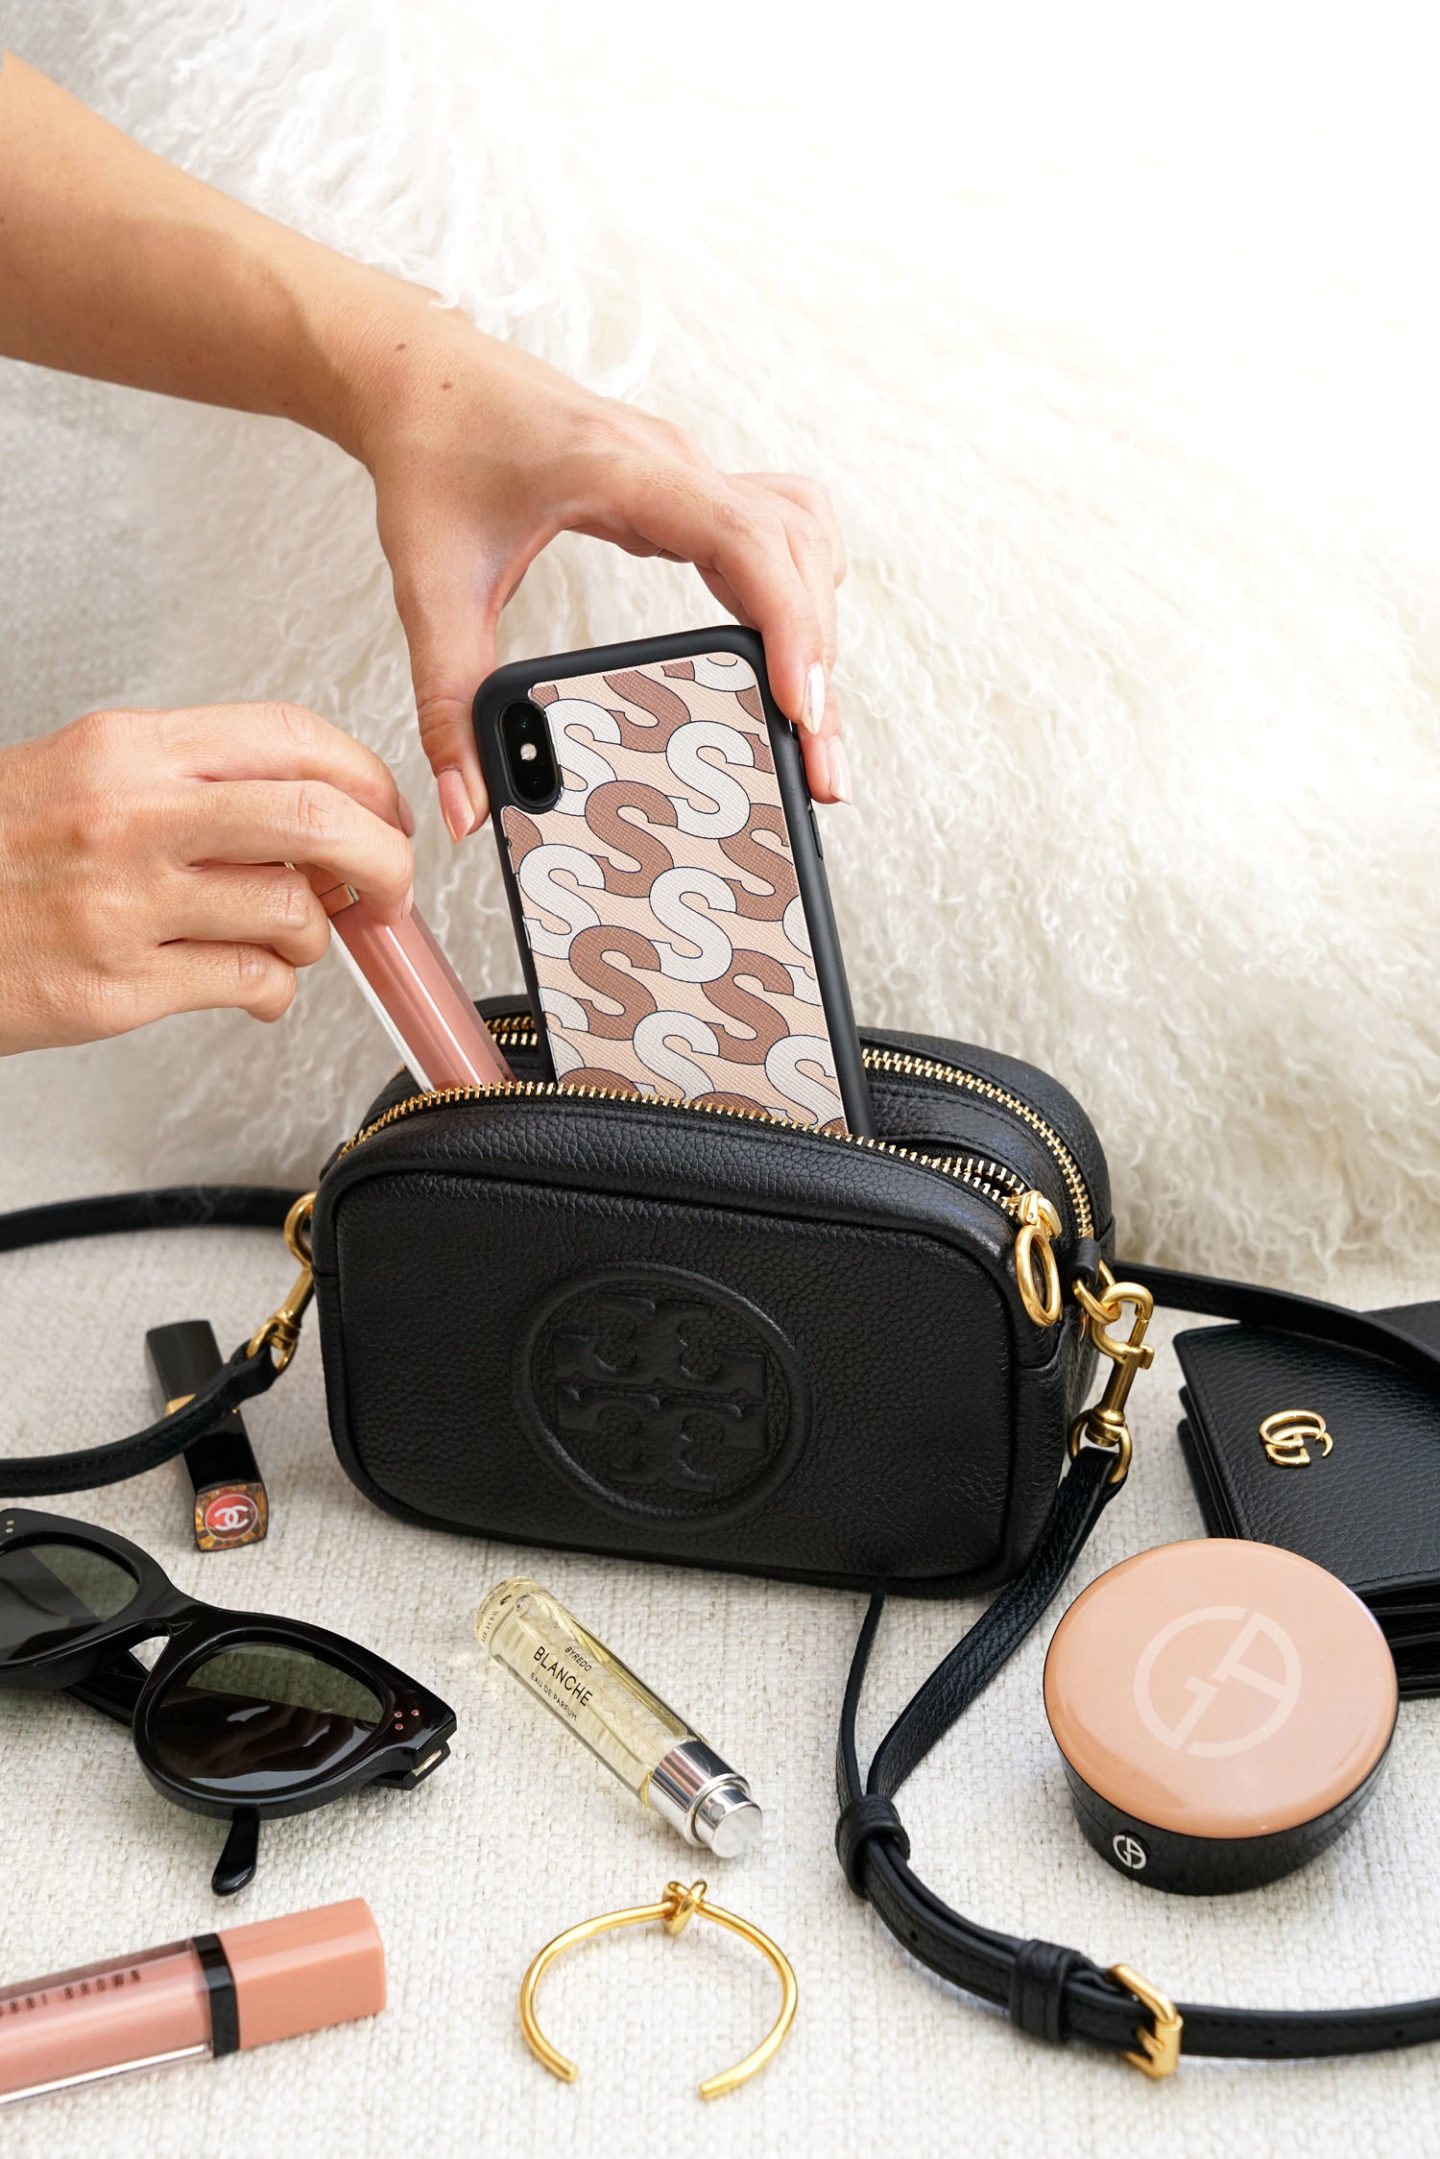 Tory Burch Perry Bombe Mini Bag Review | The Beauty Look Book